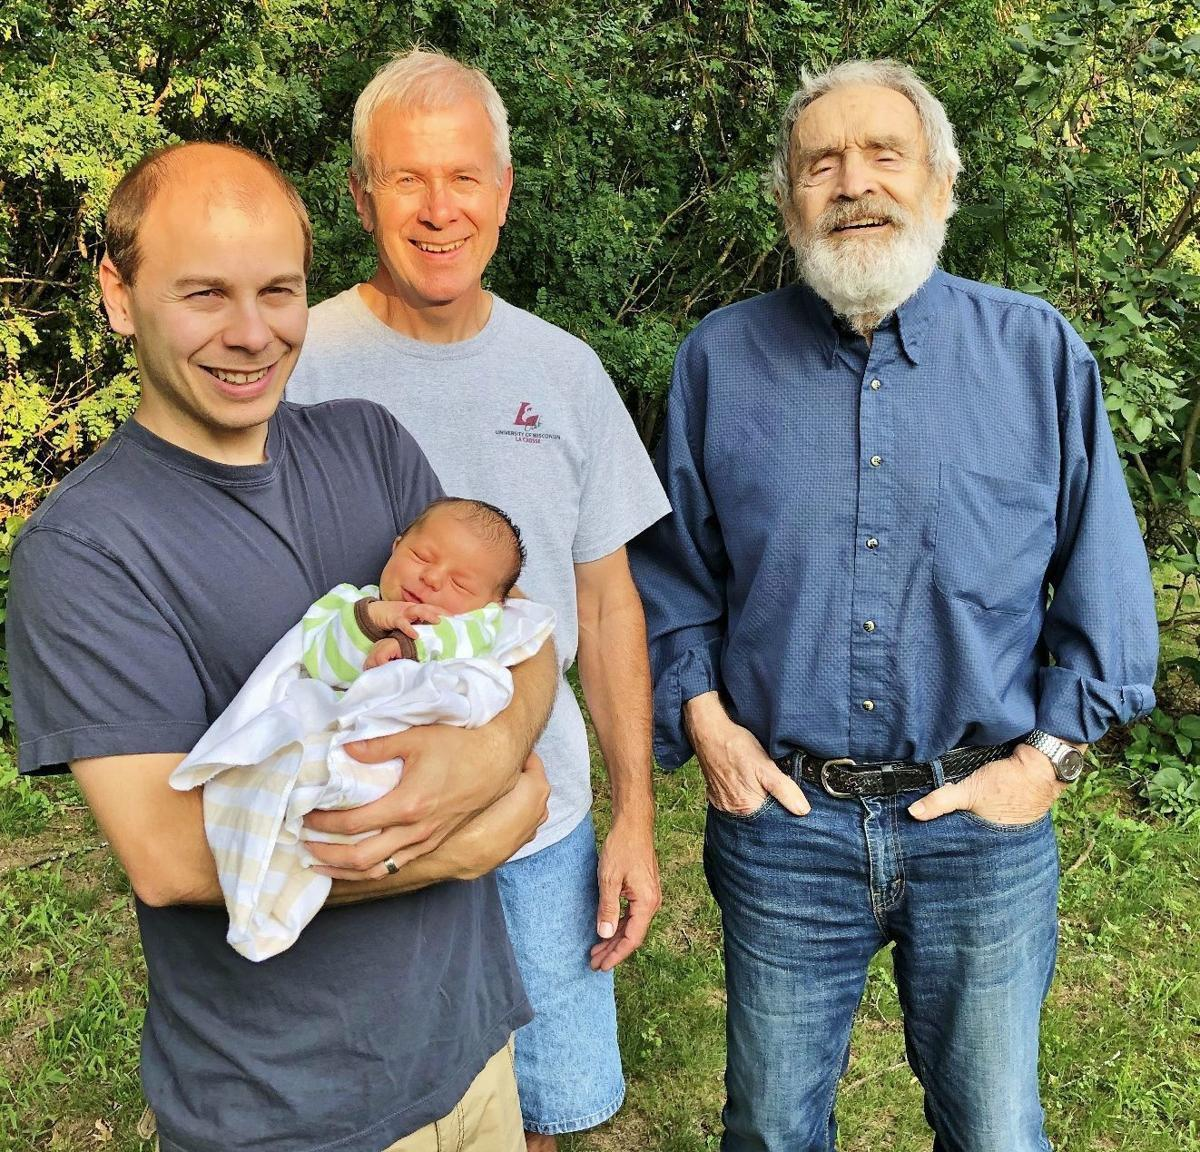 Newborn Samuel Hardie is held by his father, Ross, alongside grandfather Chris Hardie and great-grandfather Bob Hardie..jpg